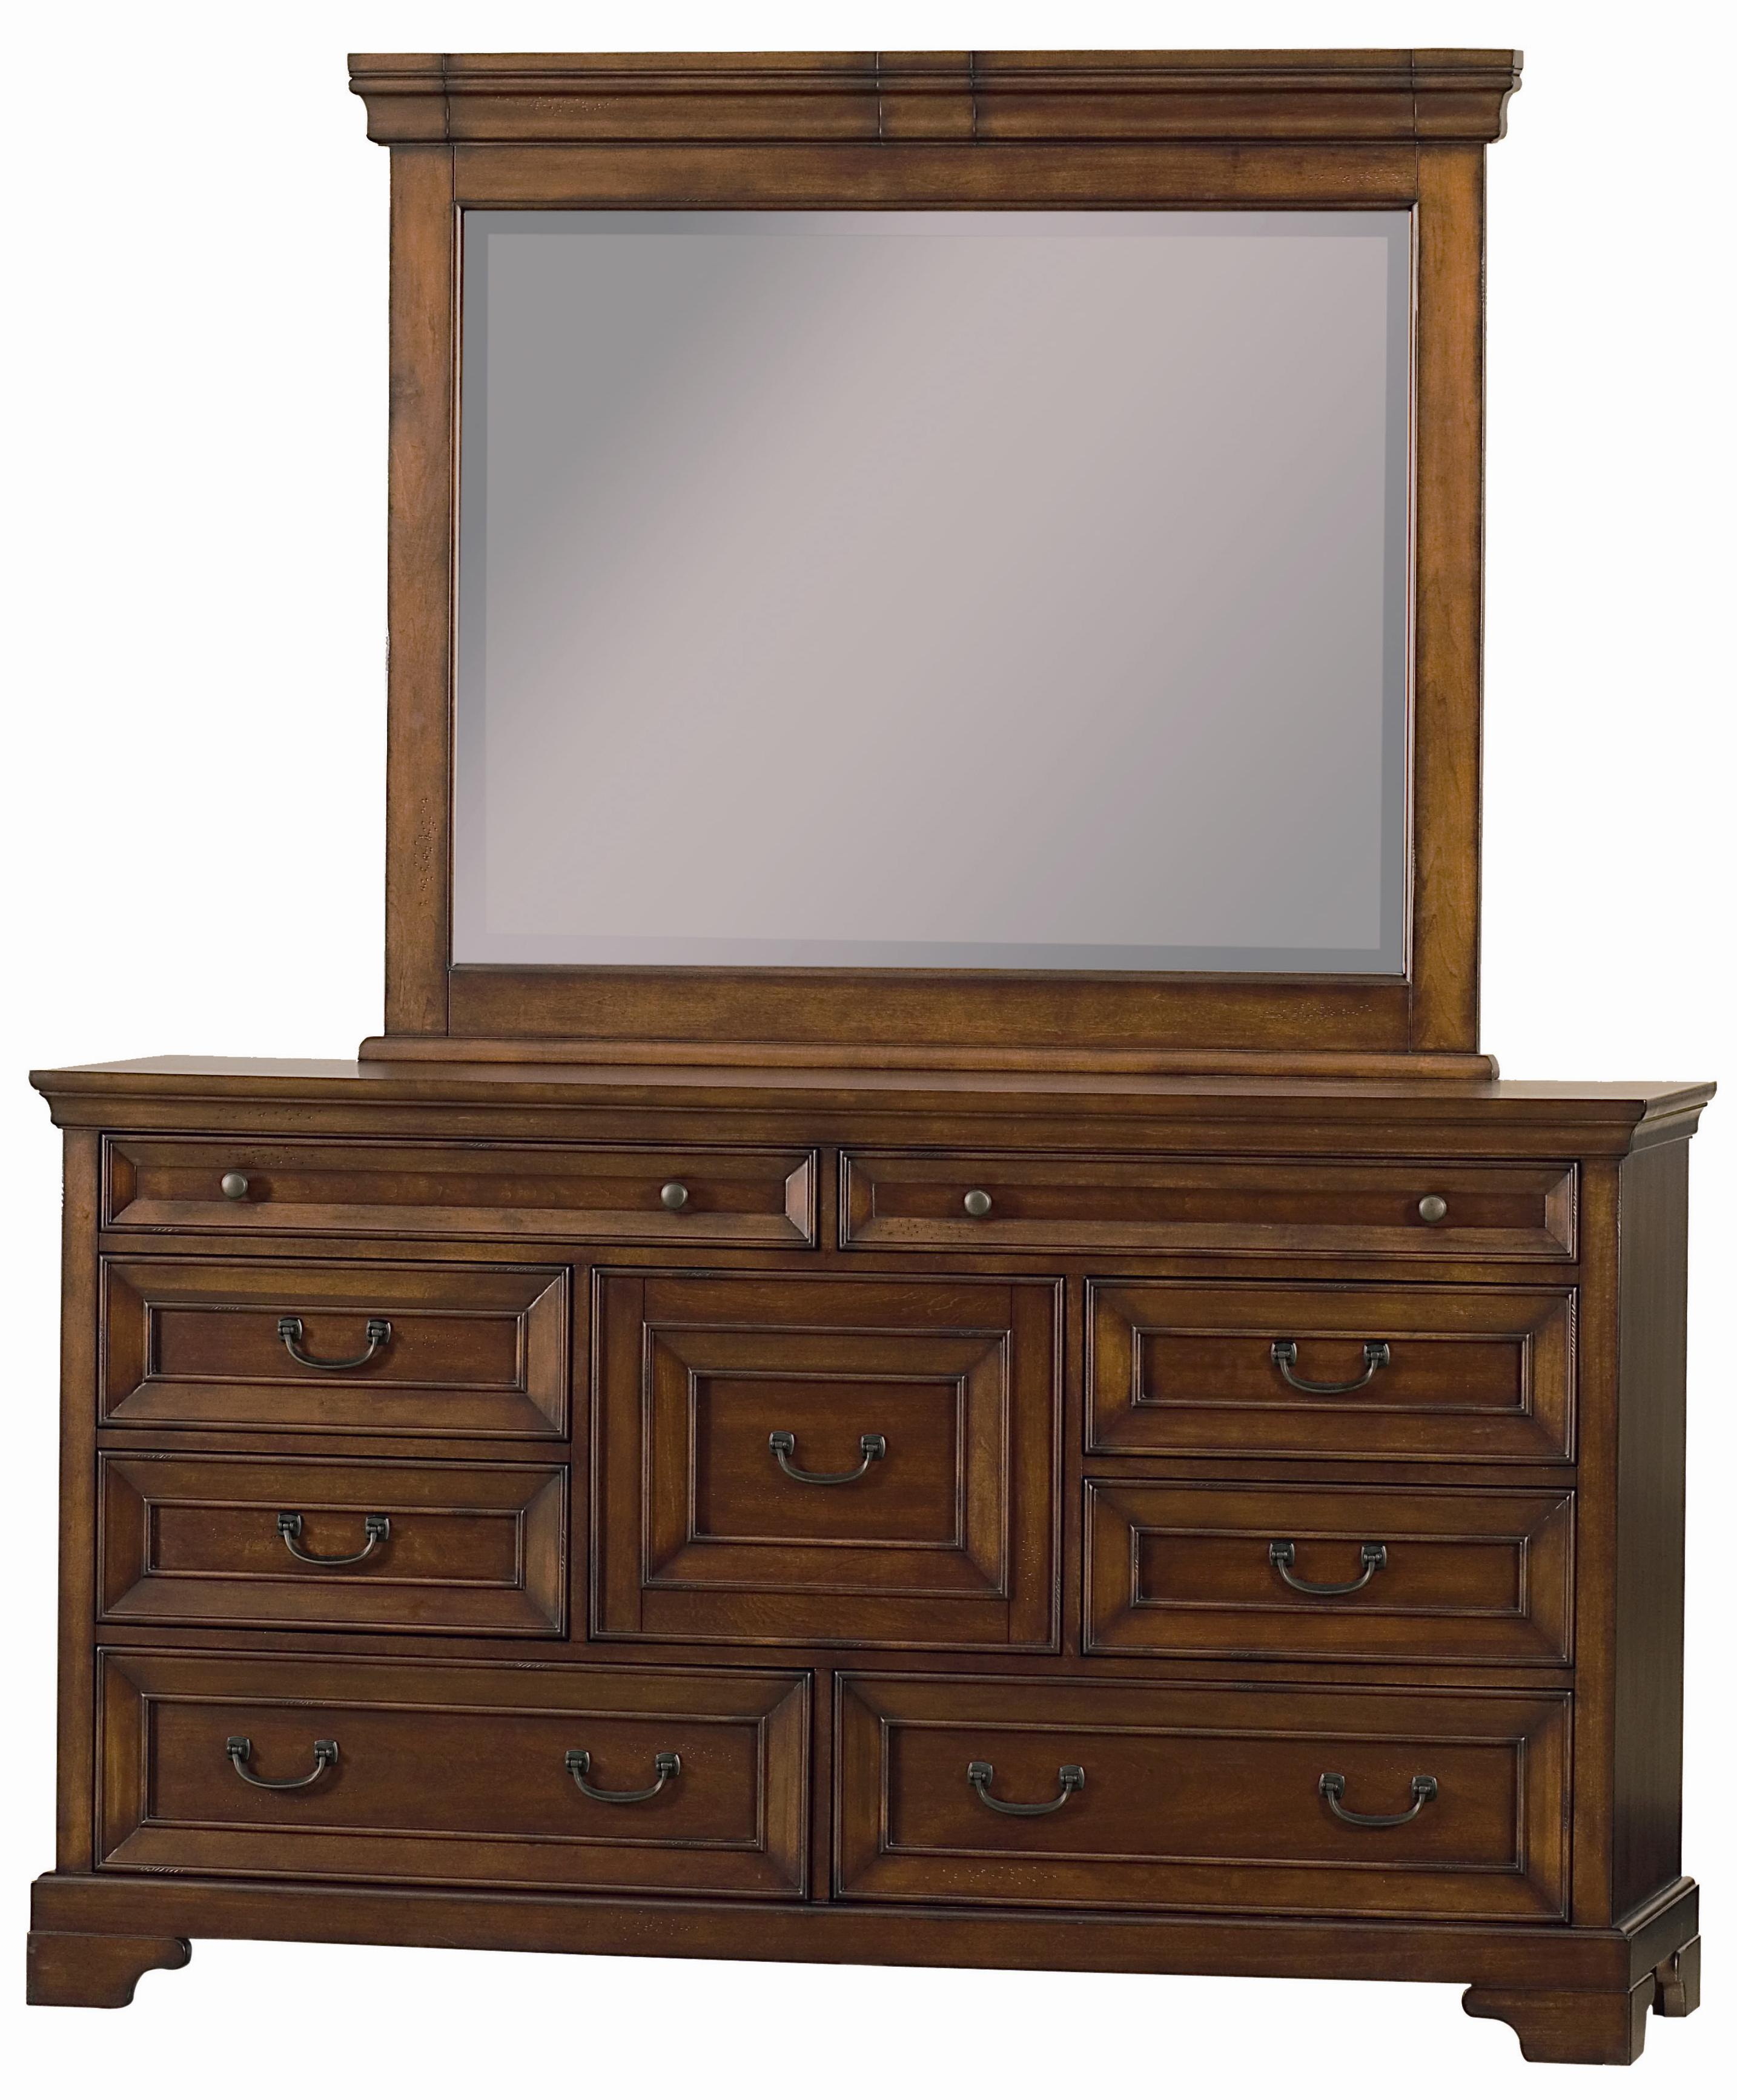 Aspenhome Richmond Dresser & Mirror - Item Number: I40-453+462